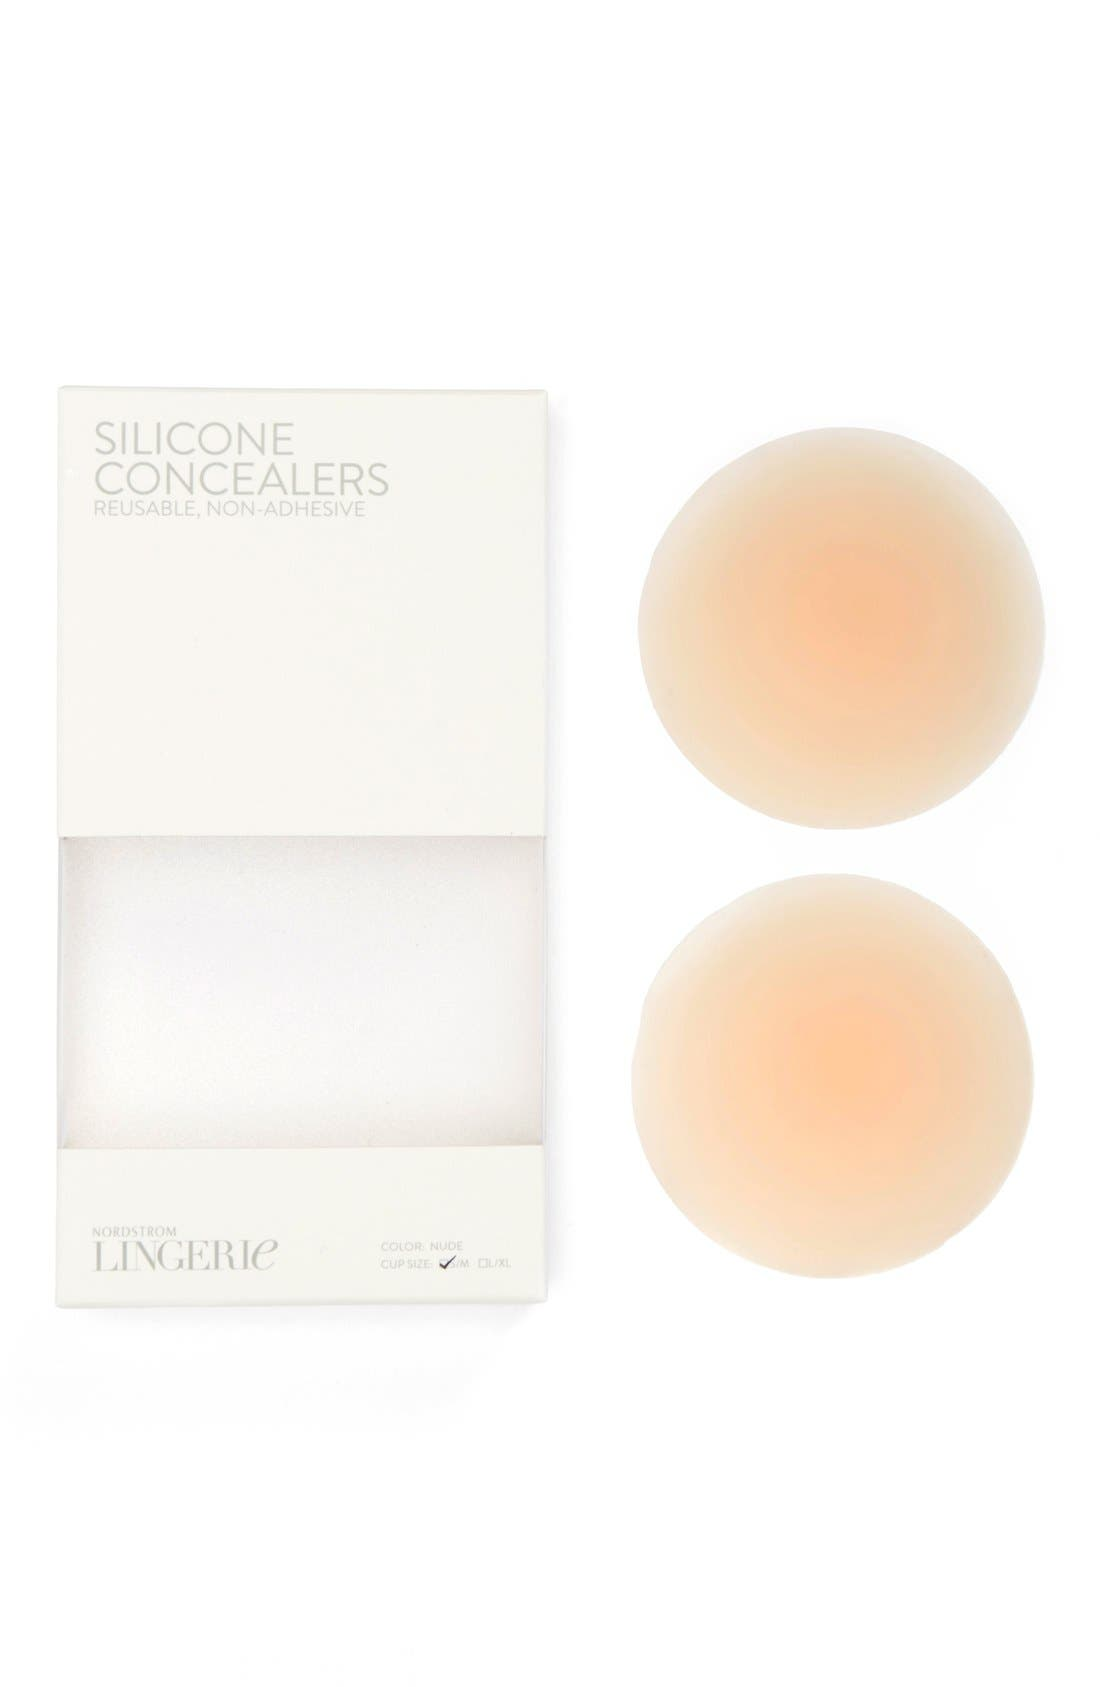 Nordstrom Lingerie Non-Adhesive Silicone Breast Petals